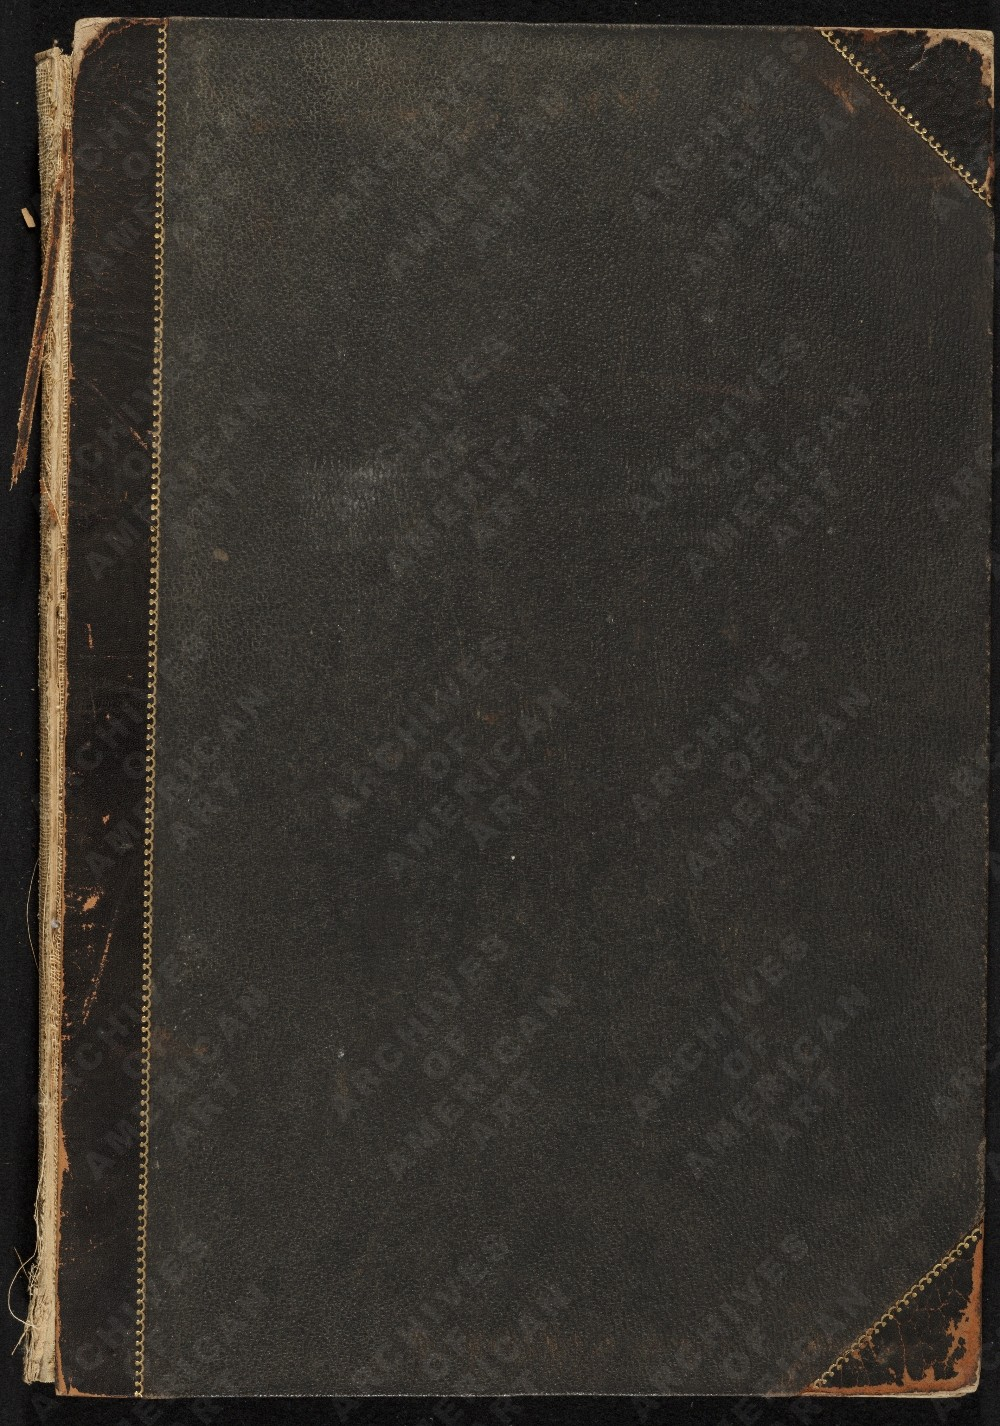 Image for cover 1